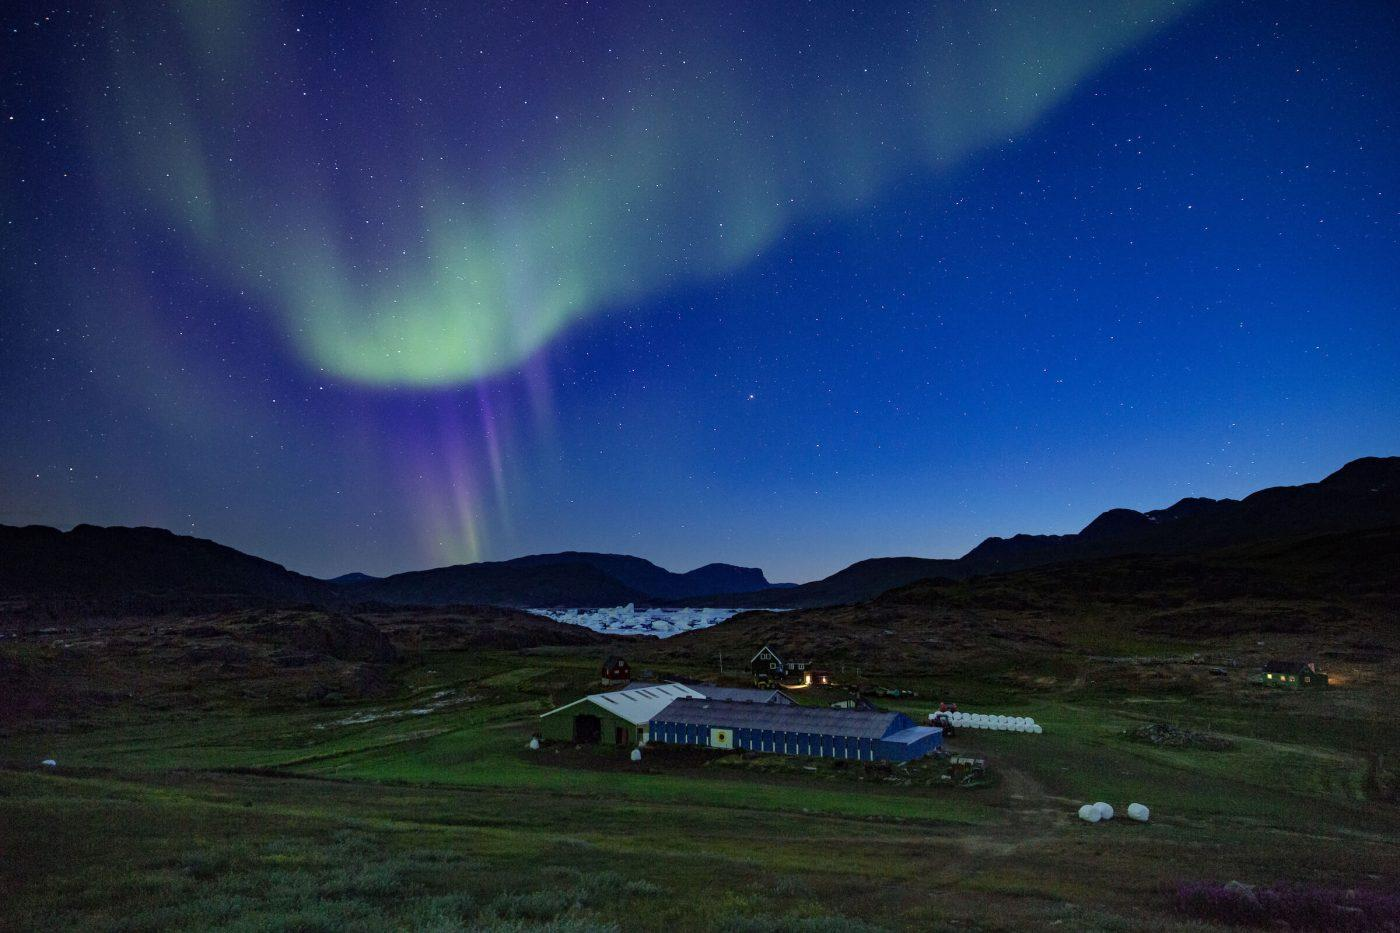 Northern lights over Tasiusaq sheep farm in South Greenland. By Mads Pihl